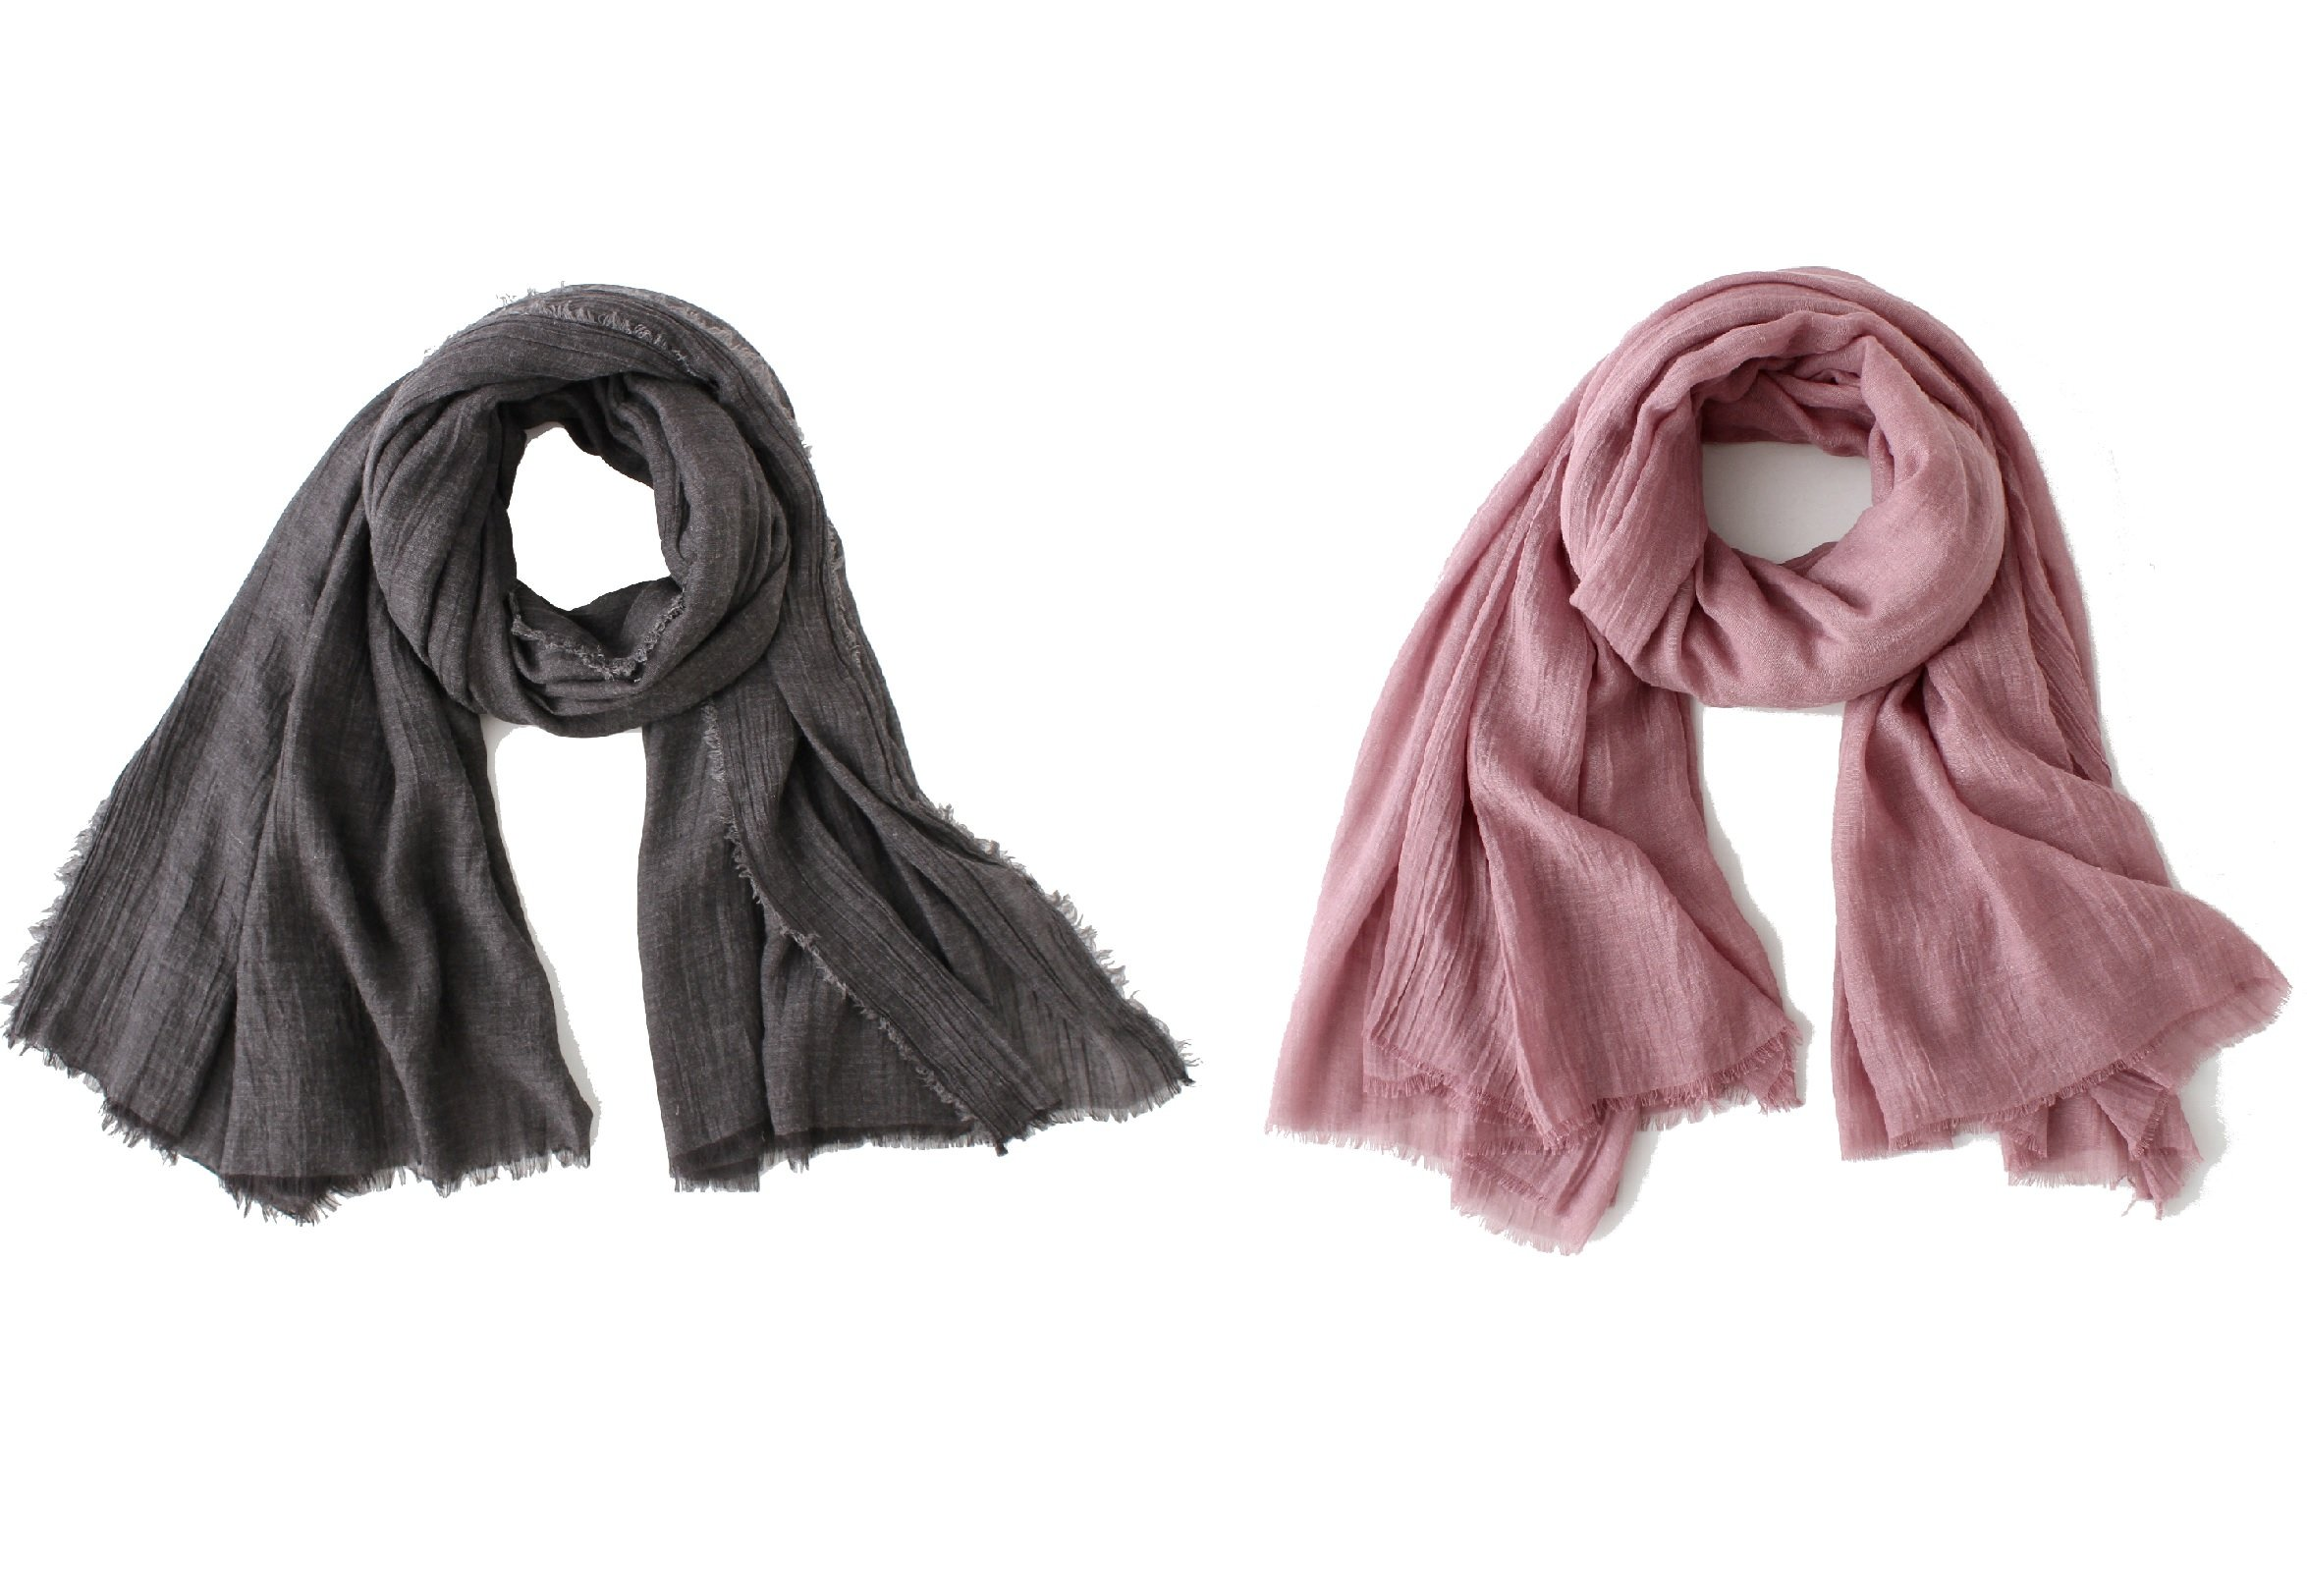 WS Natural Oversized Soft Scarf/Shawl/Wrap Basic Scarves Square For Men And Women (Charcoal and purple)